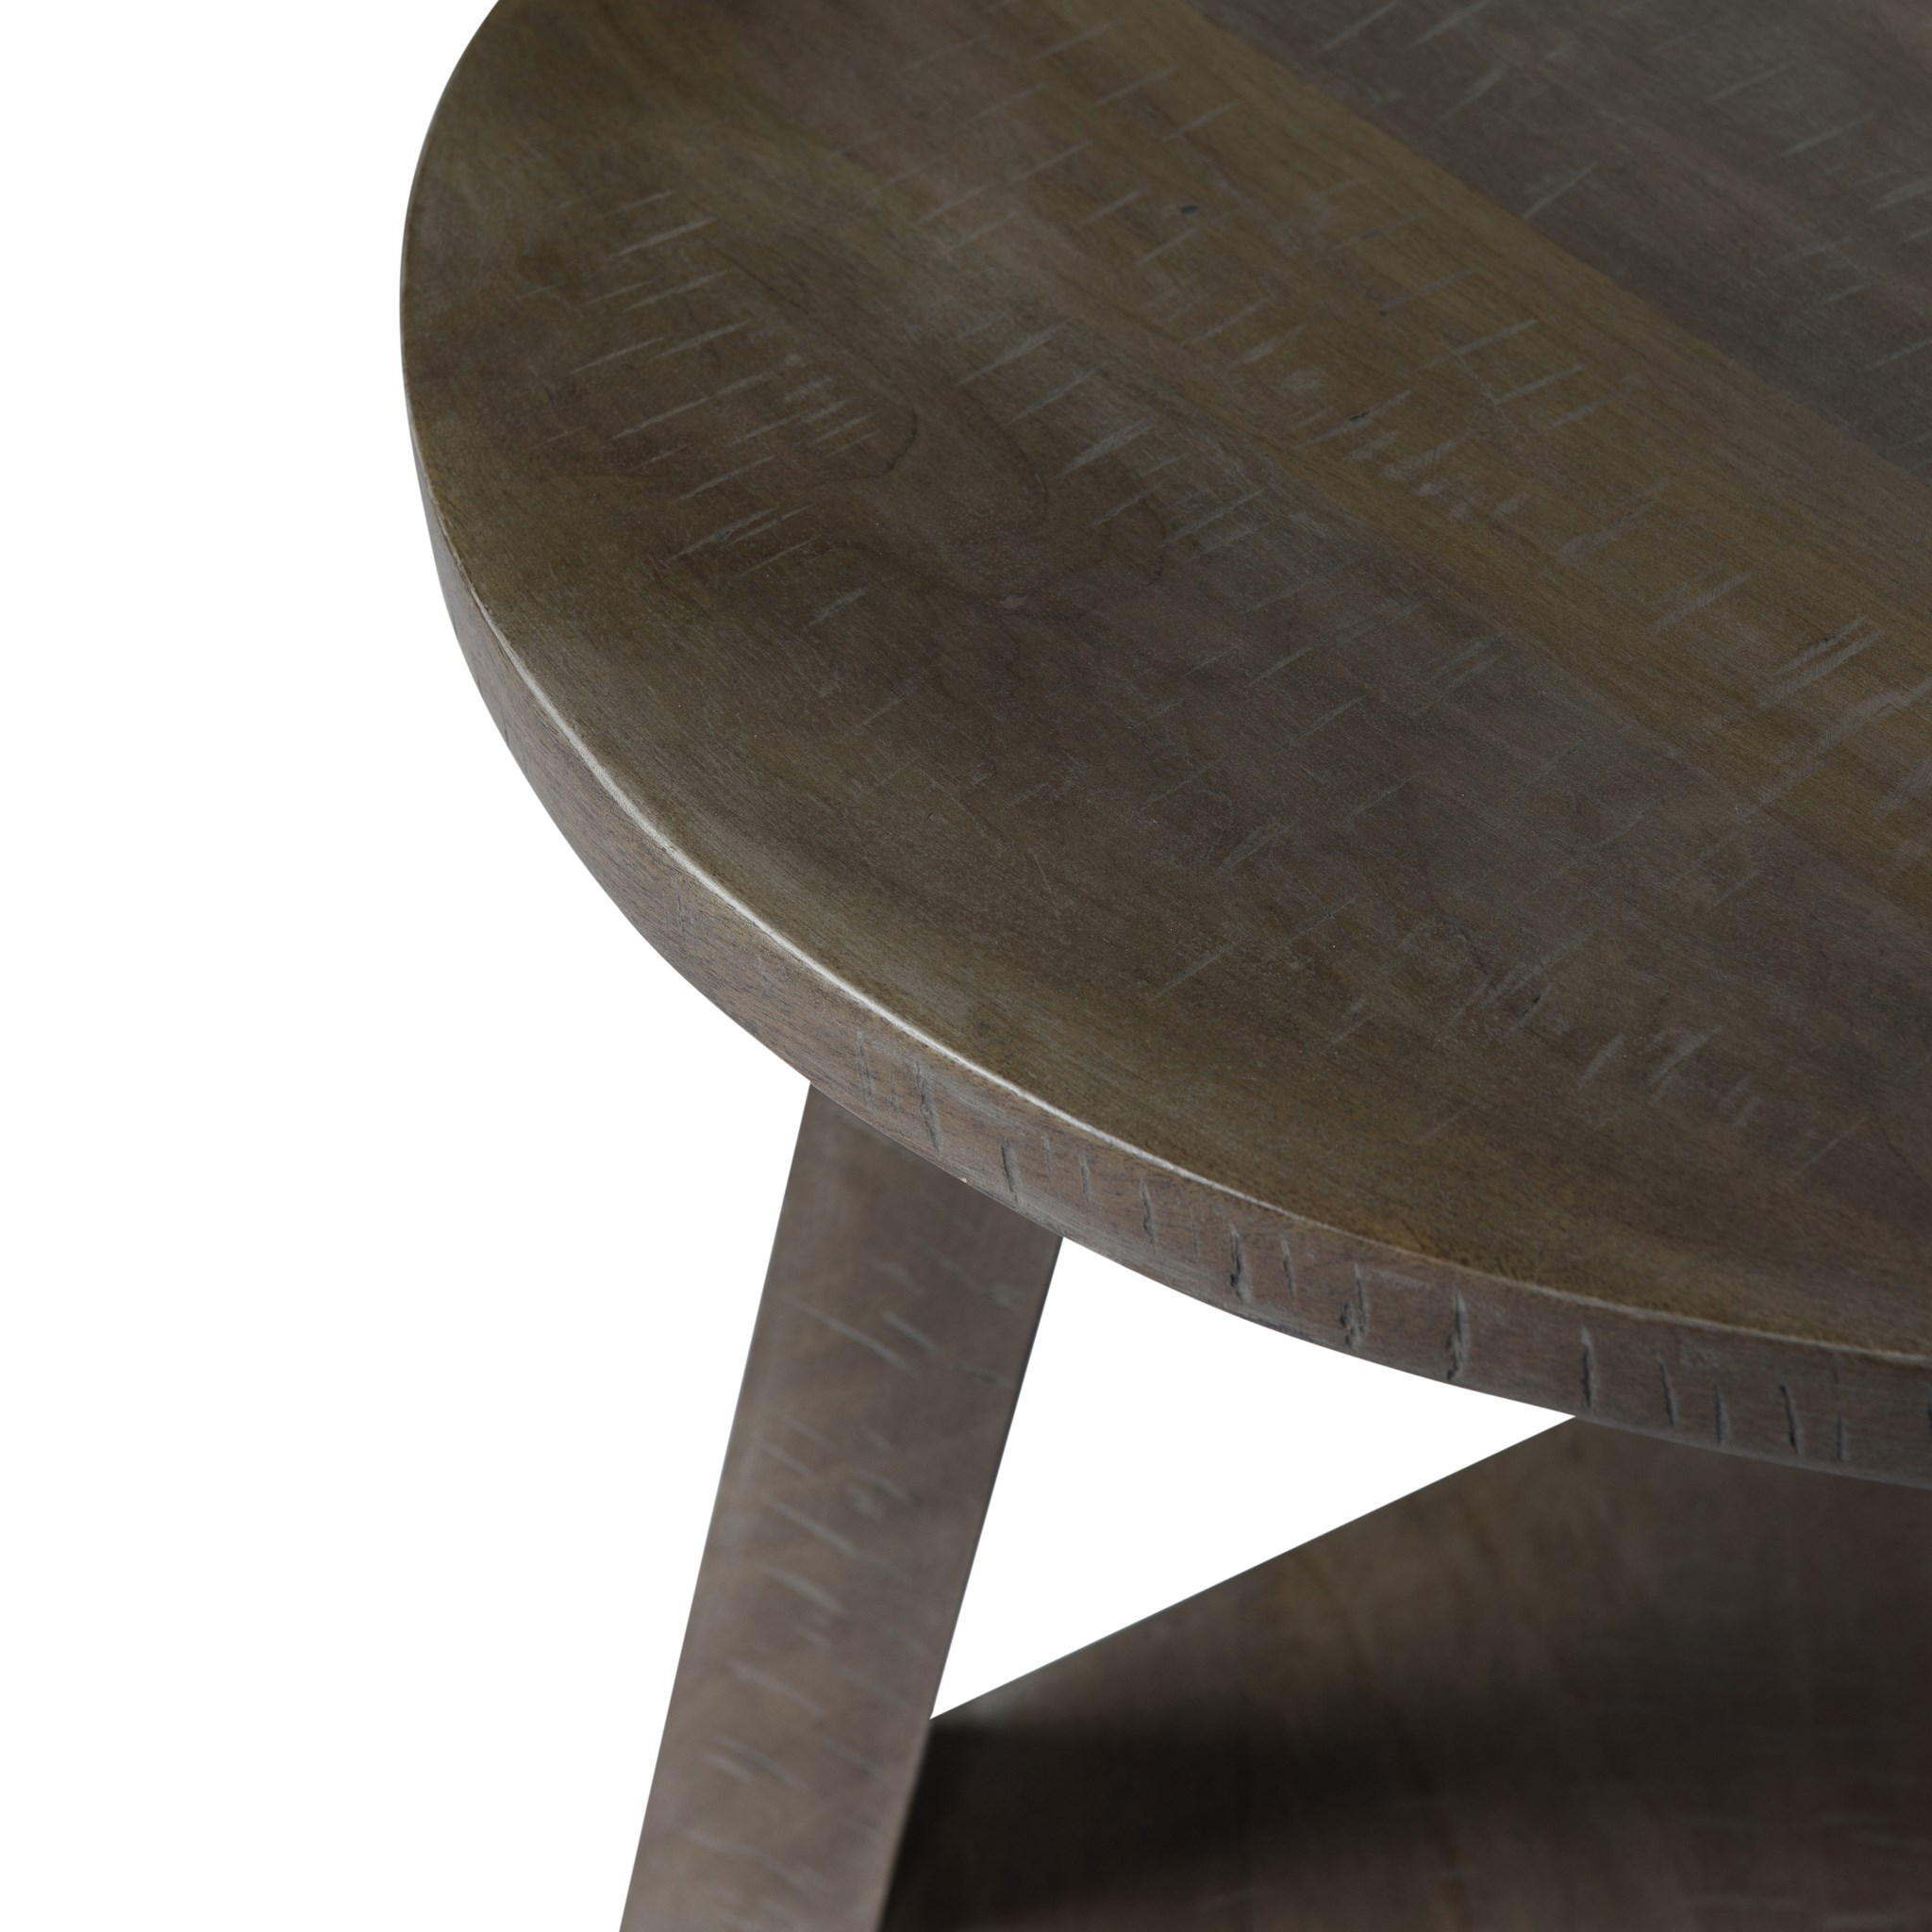 Verona Side Table 24x24x26 (SAL)